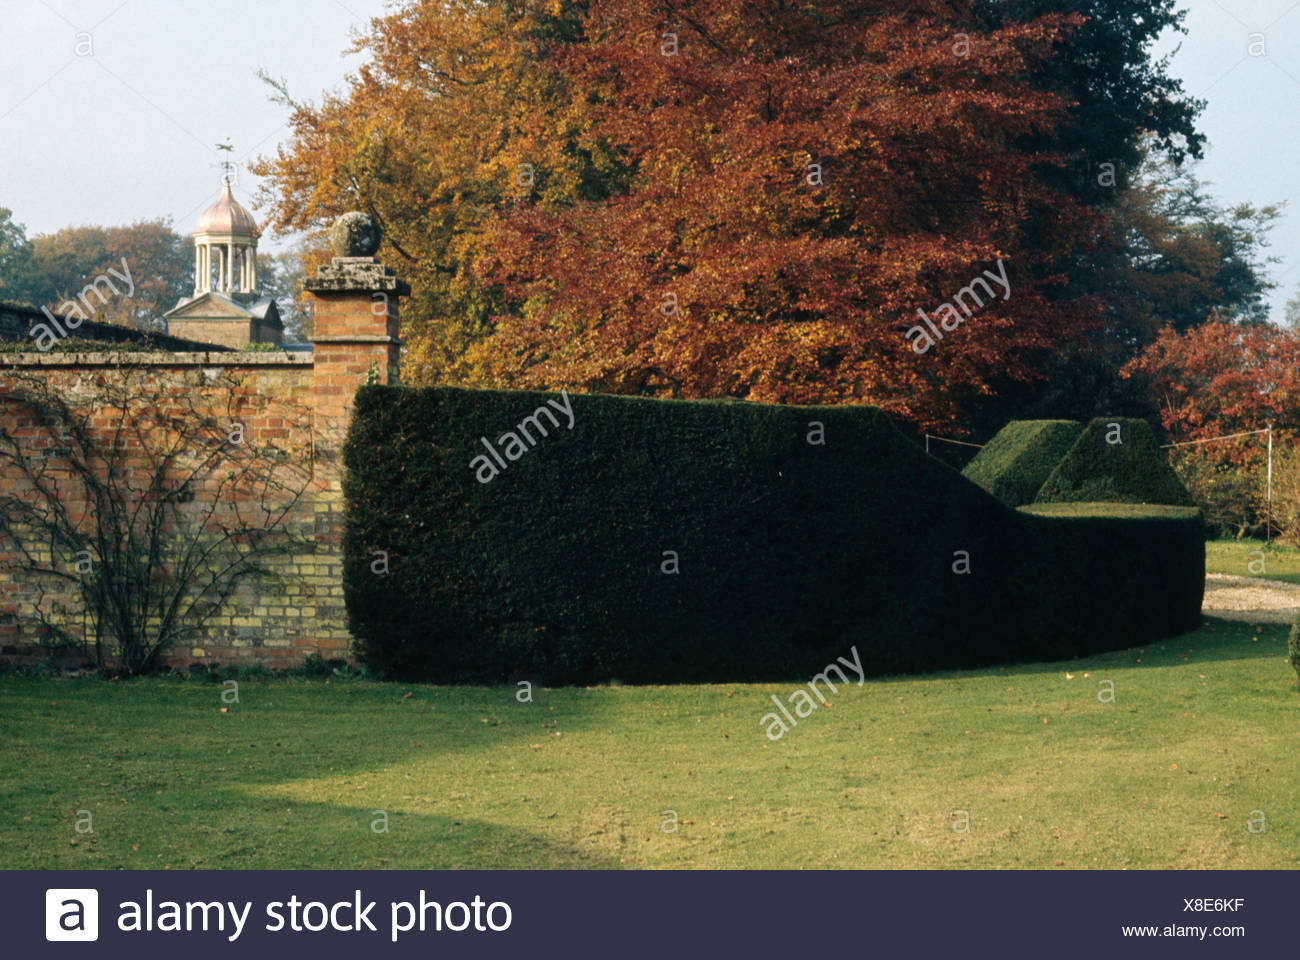 Newly clipped yew hedge and lawn in front of beech tree in large walled country garden in Autumn - Stock Image